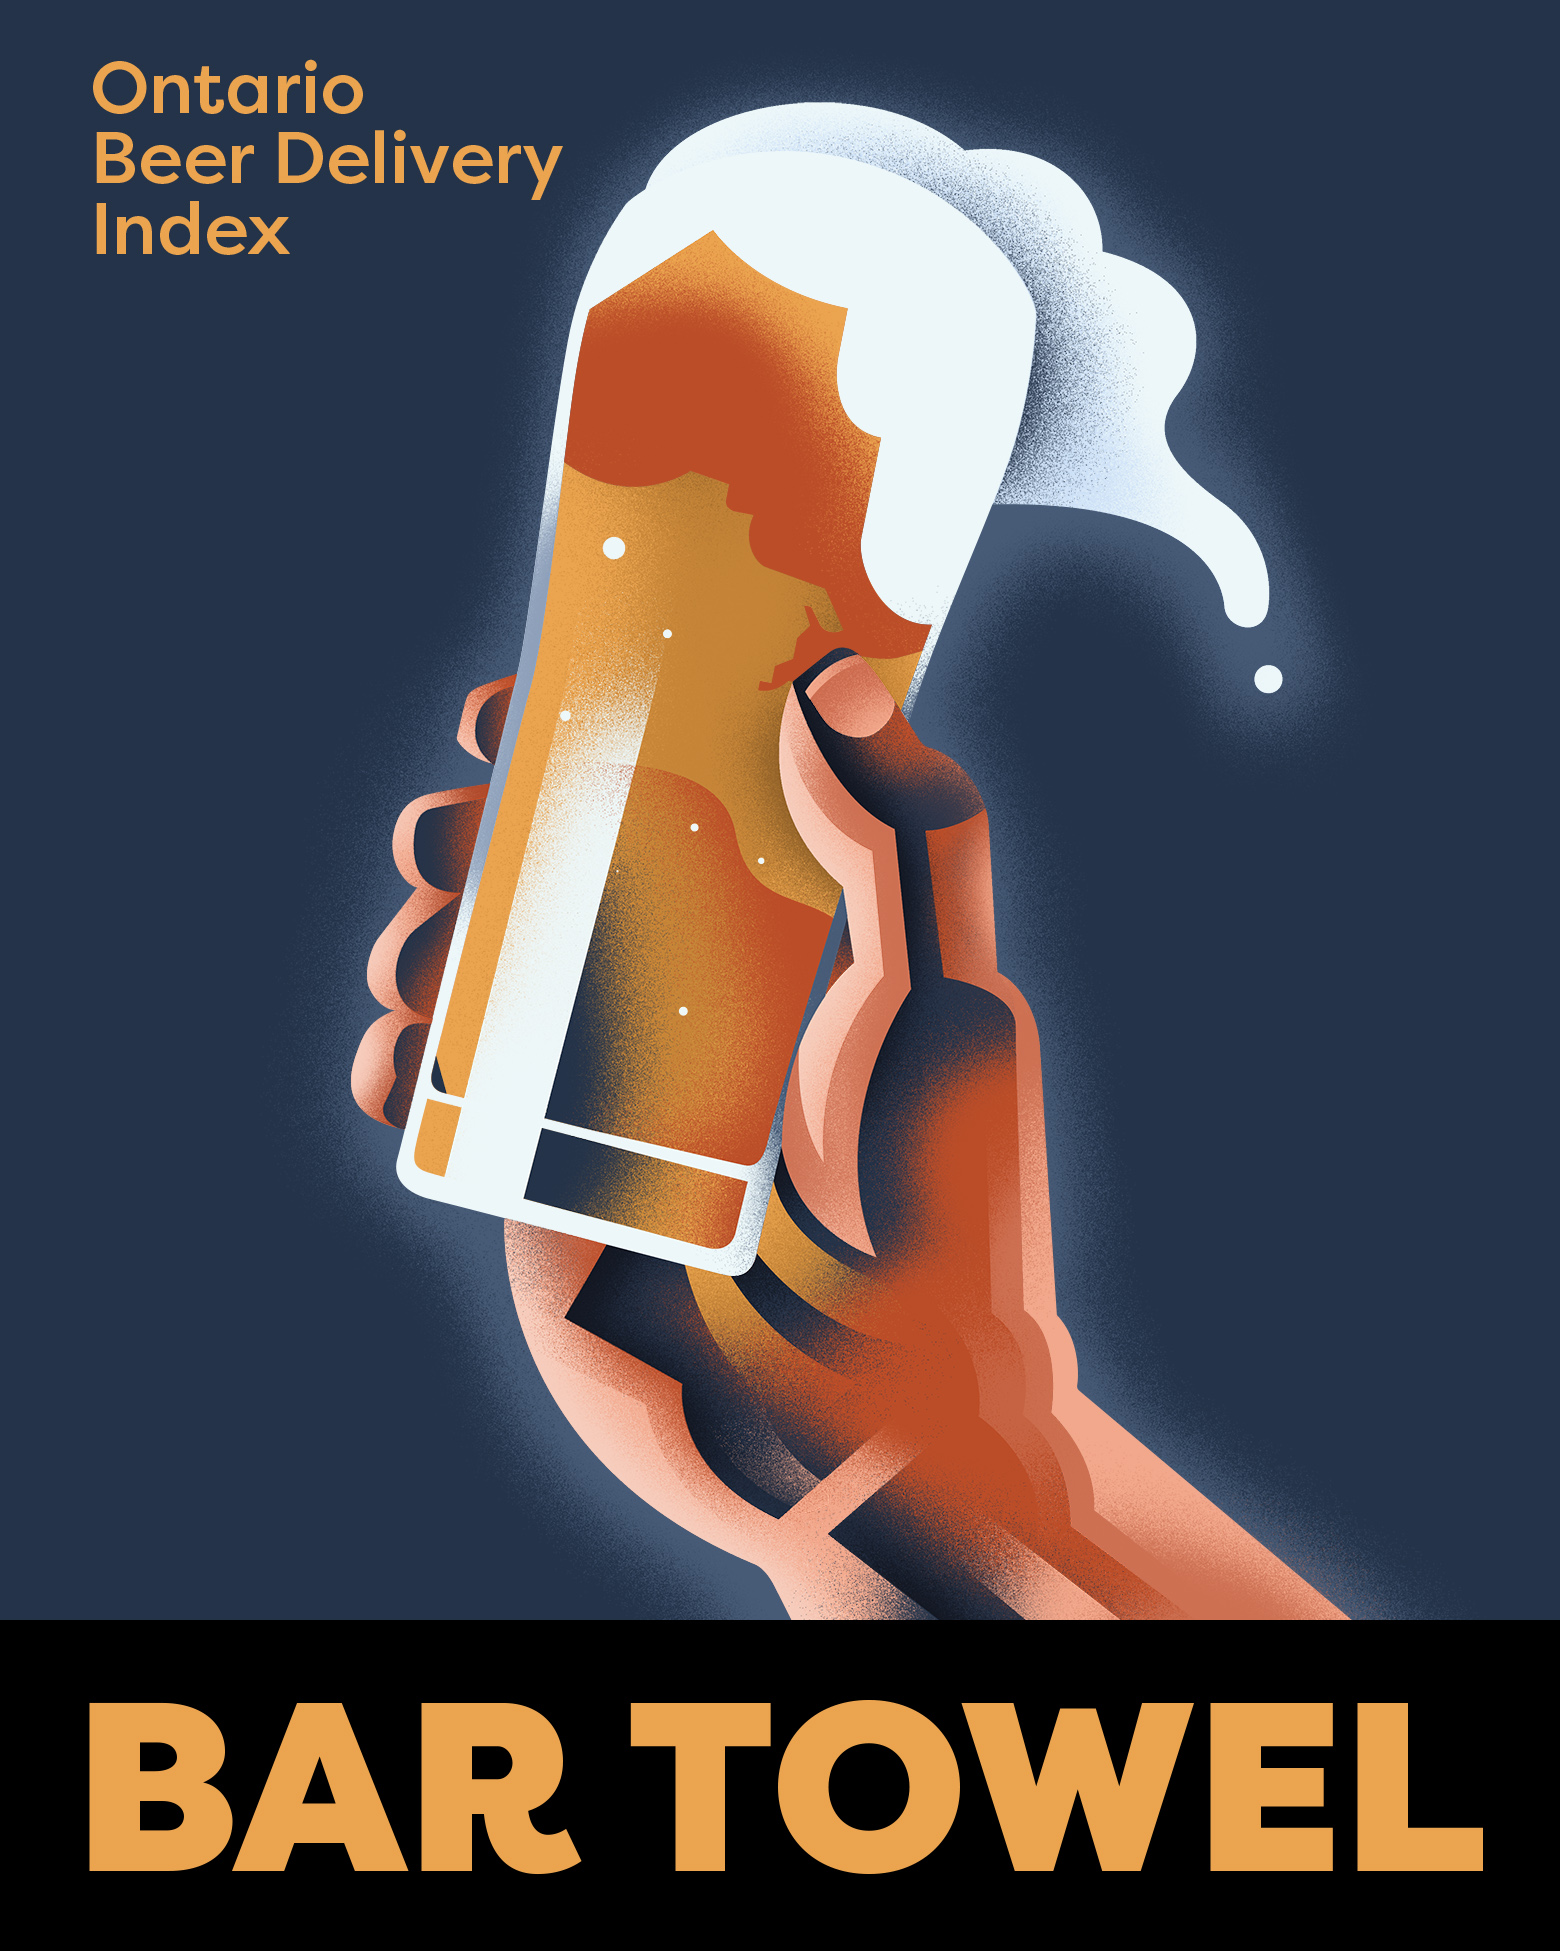 The Bar Towel Launches Ontario Beer Delivery Index